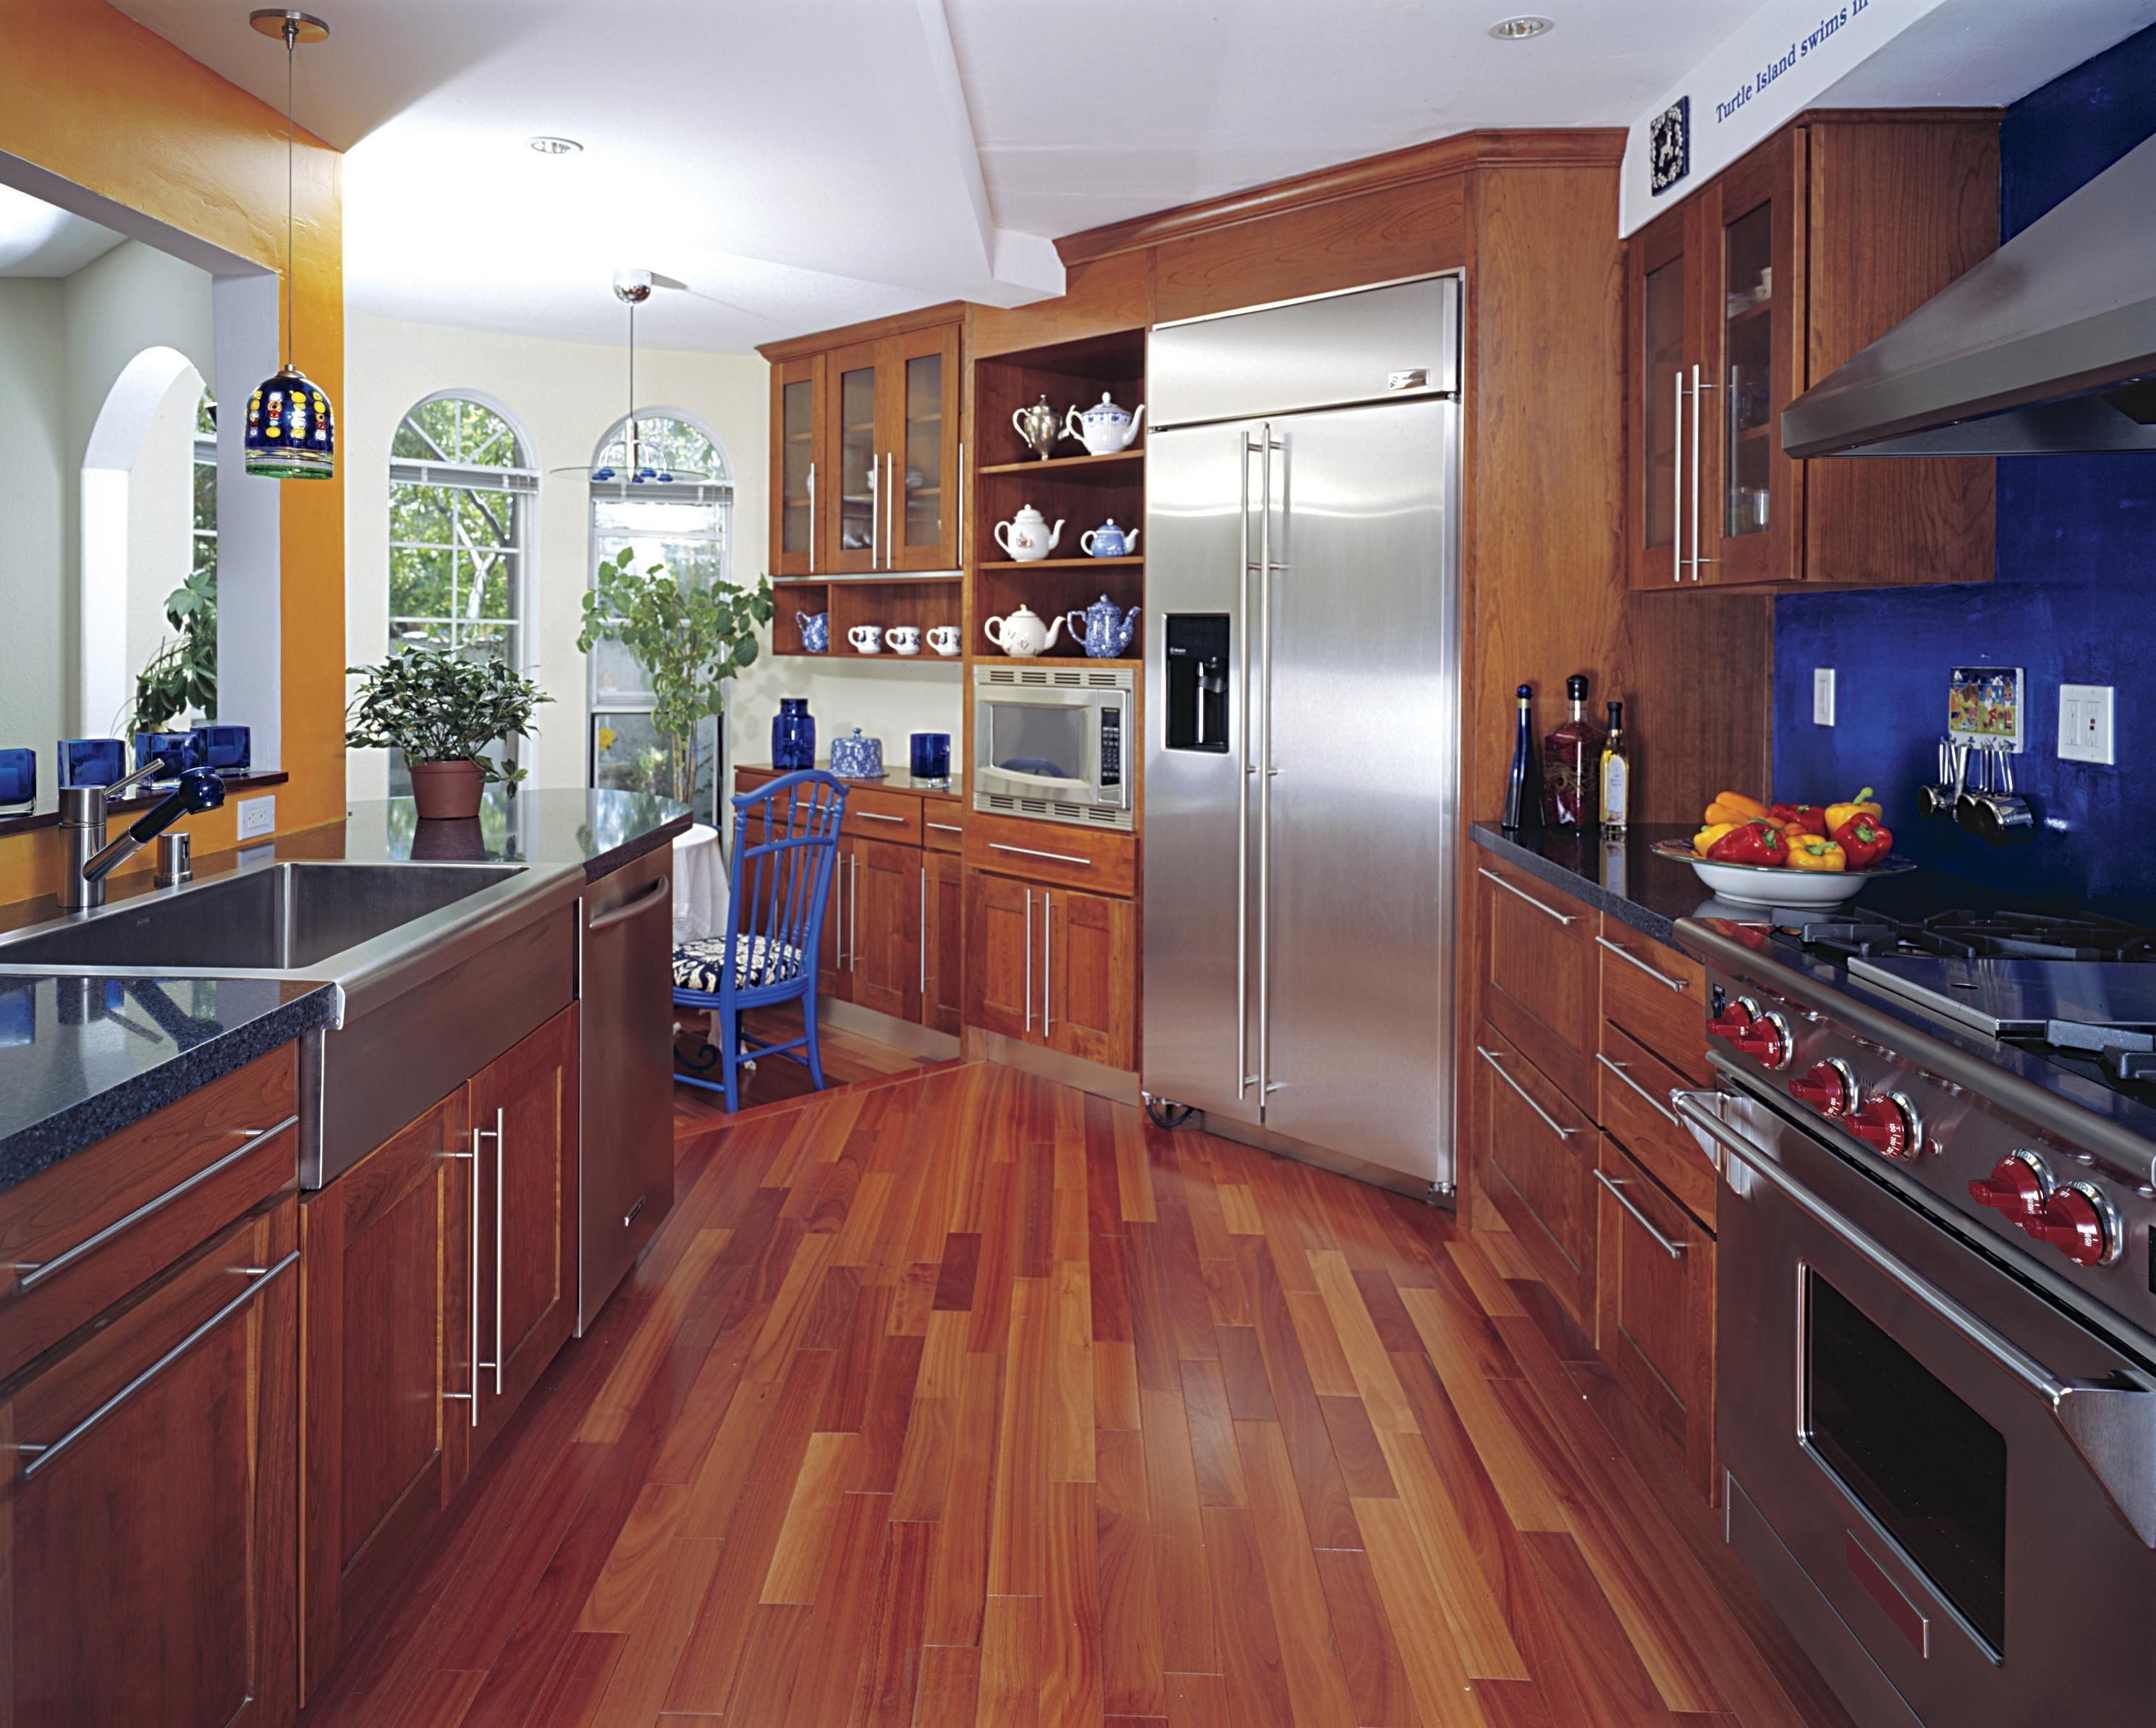 mt hardwood floors of bewitching pictures of hardwood floors in kitchens in floored inside trinitycountyfoodbank lovely pictures of hardwood floors in kitchens and hardwood flooring for kitchen